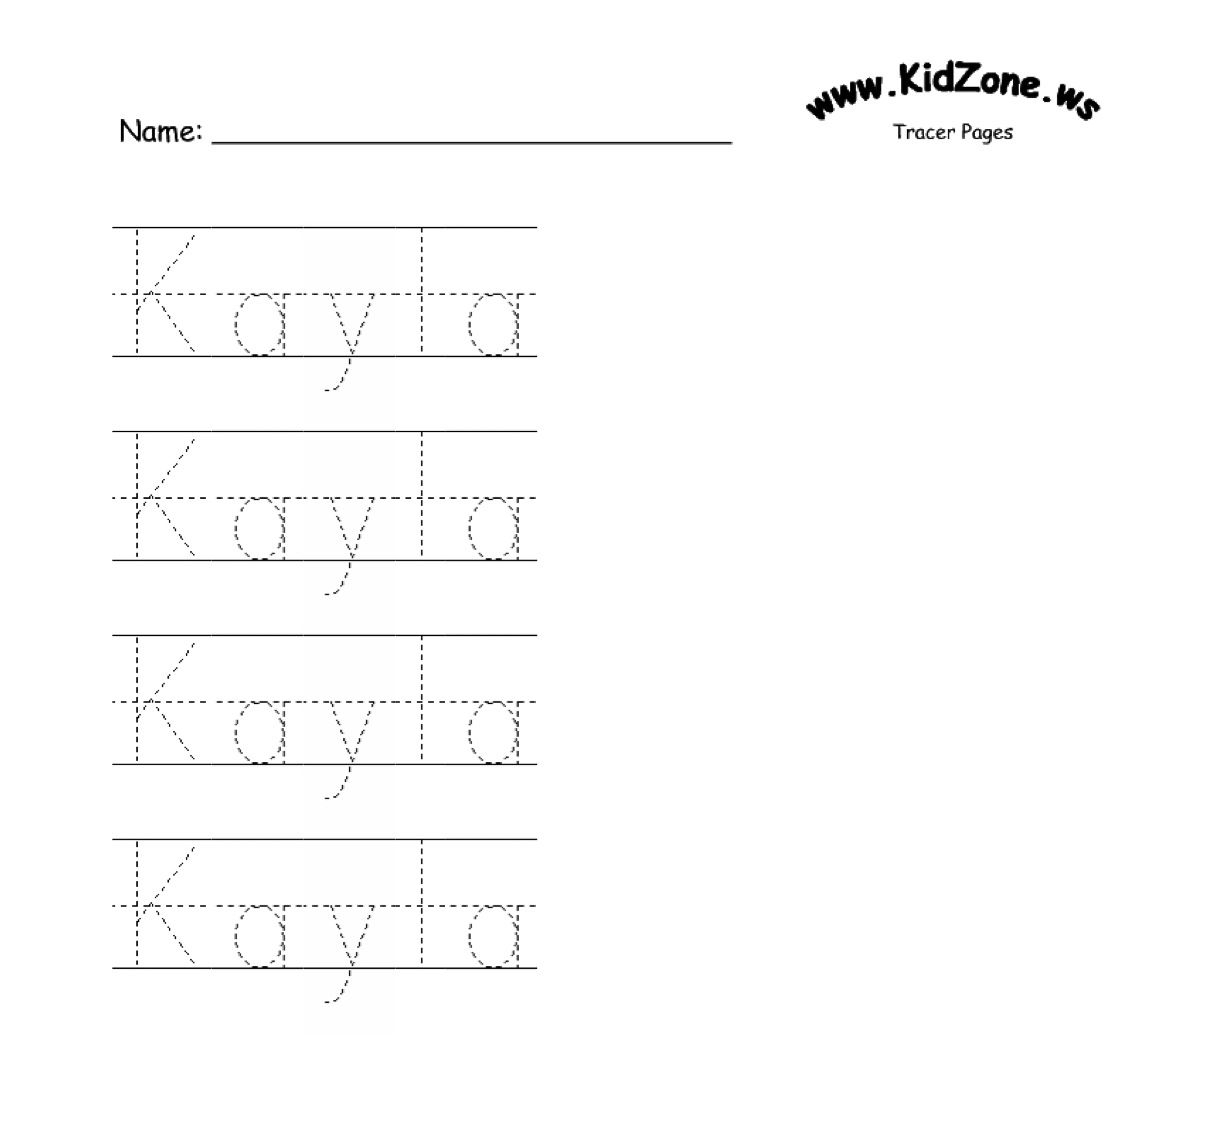 Custom Name Tracer Pages | Preschool Writing, Name Tracing throughout Name.tracing